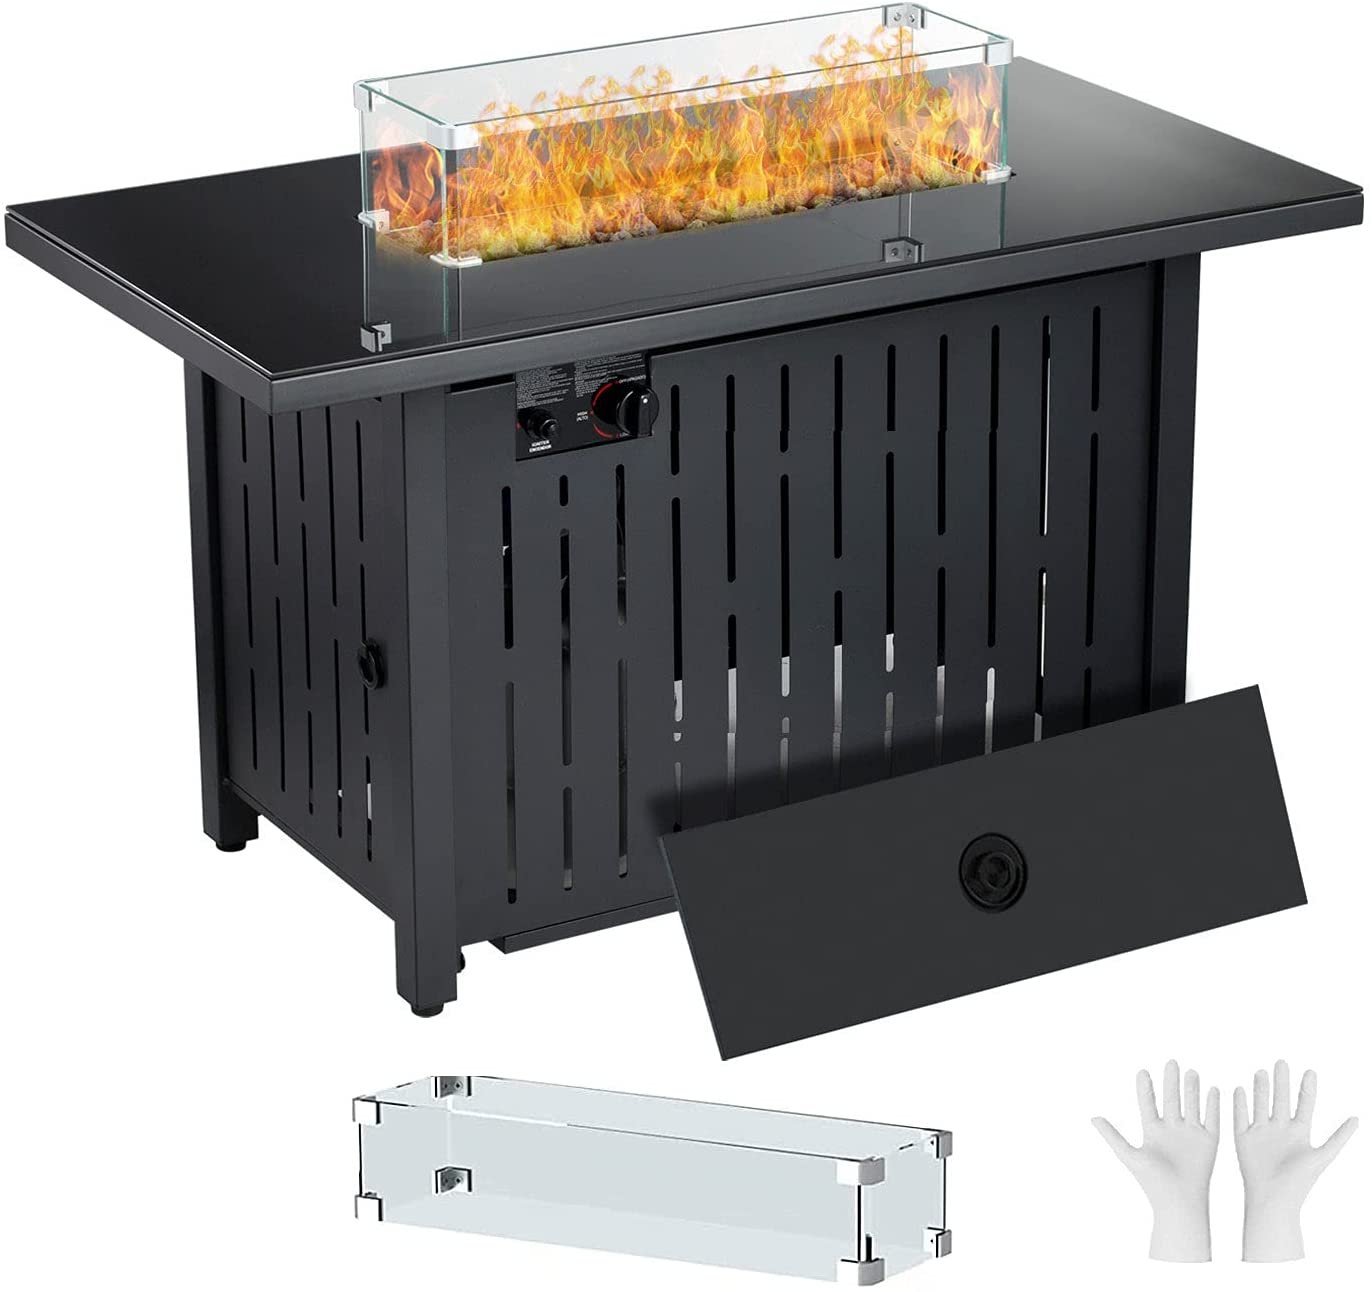 2021 model Quality inspection Propane Fire Pit Table 44 Inch Auto-Ignition Fir 60 Gas 000 BTU